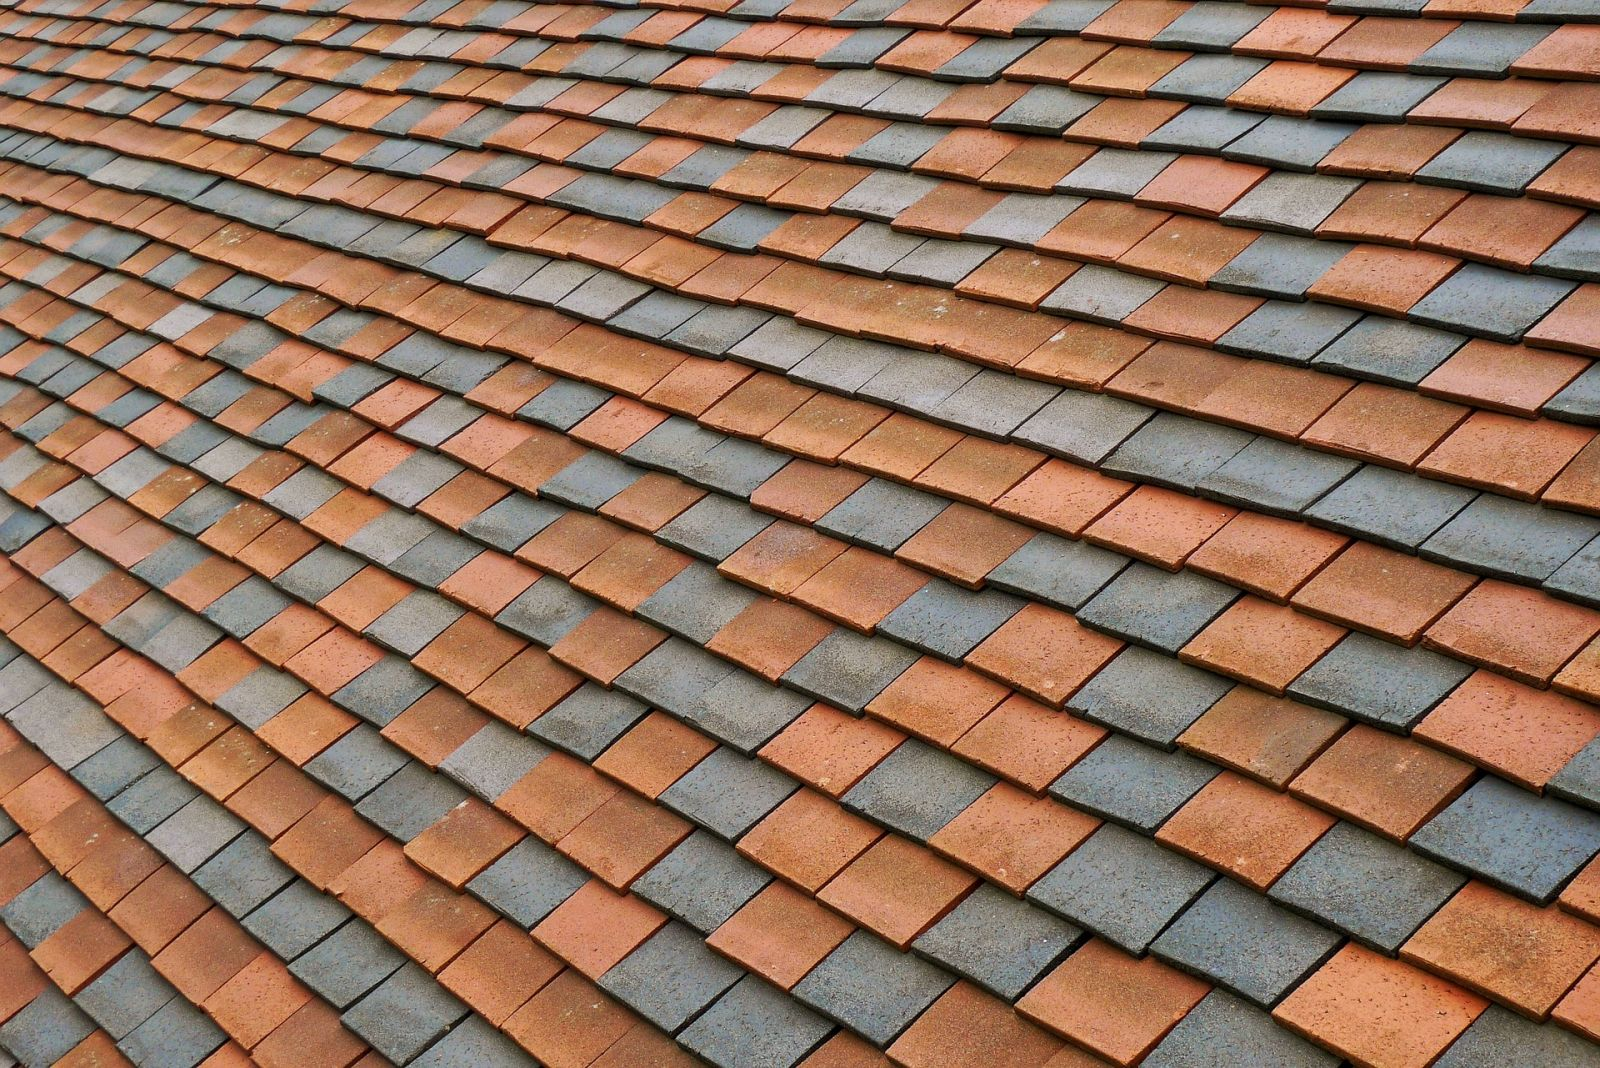 Freedom bonds investment strategies and insights for finance roof shingles shingle pattern old shingled roof fandeluxe Choice Image